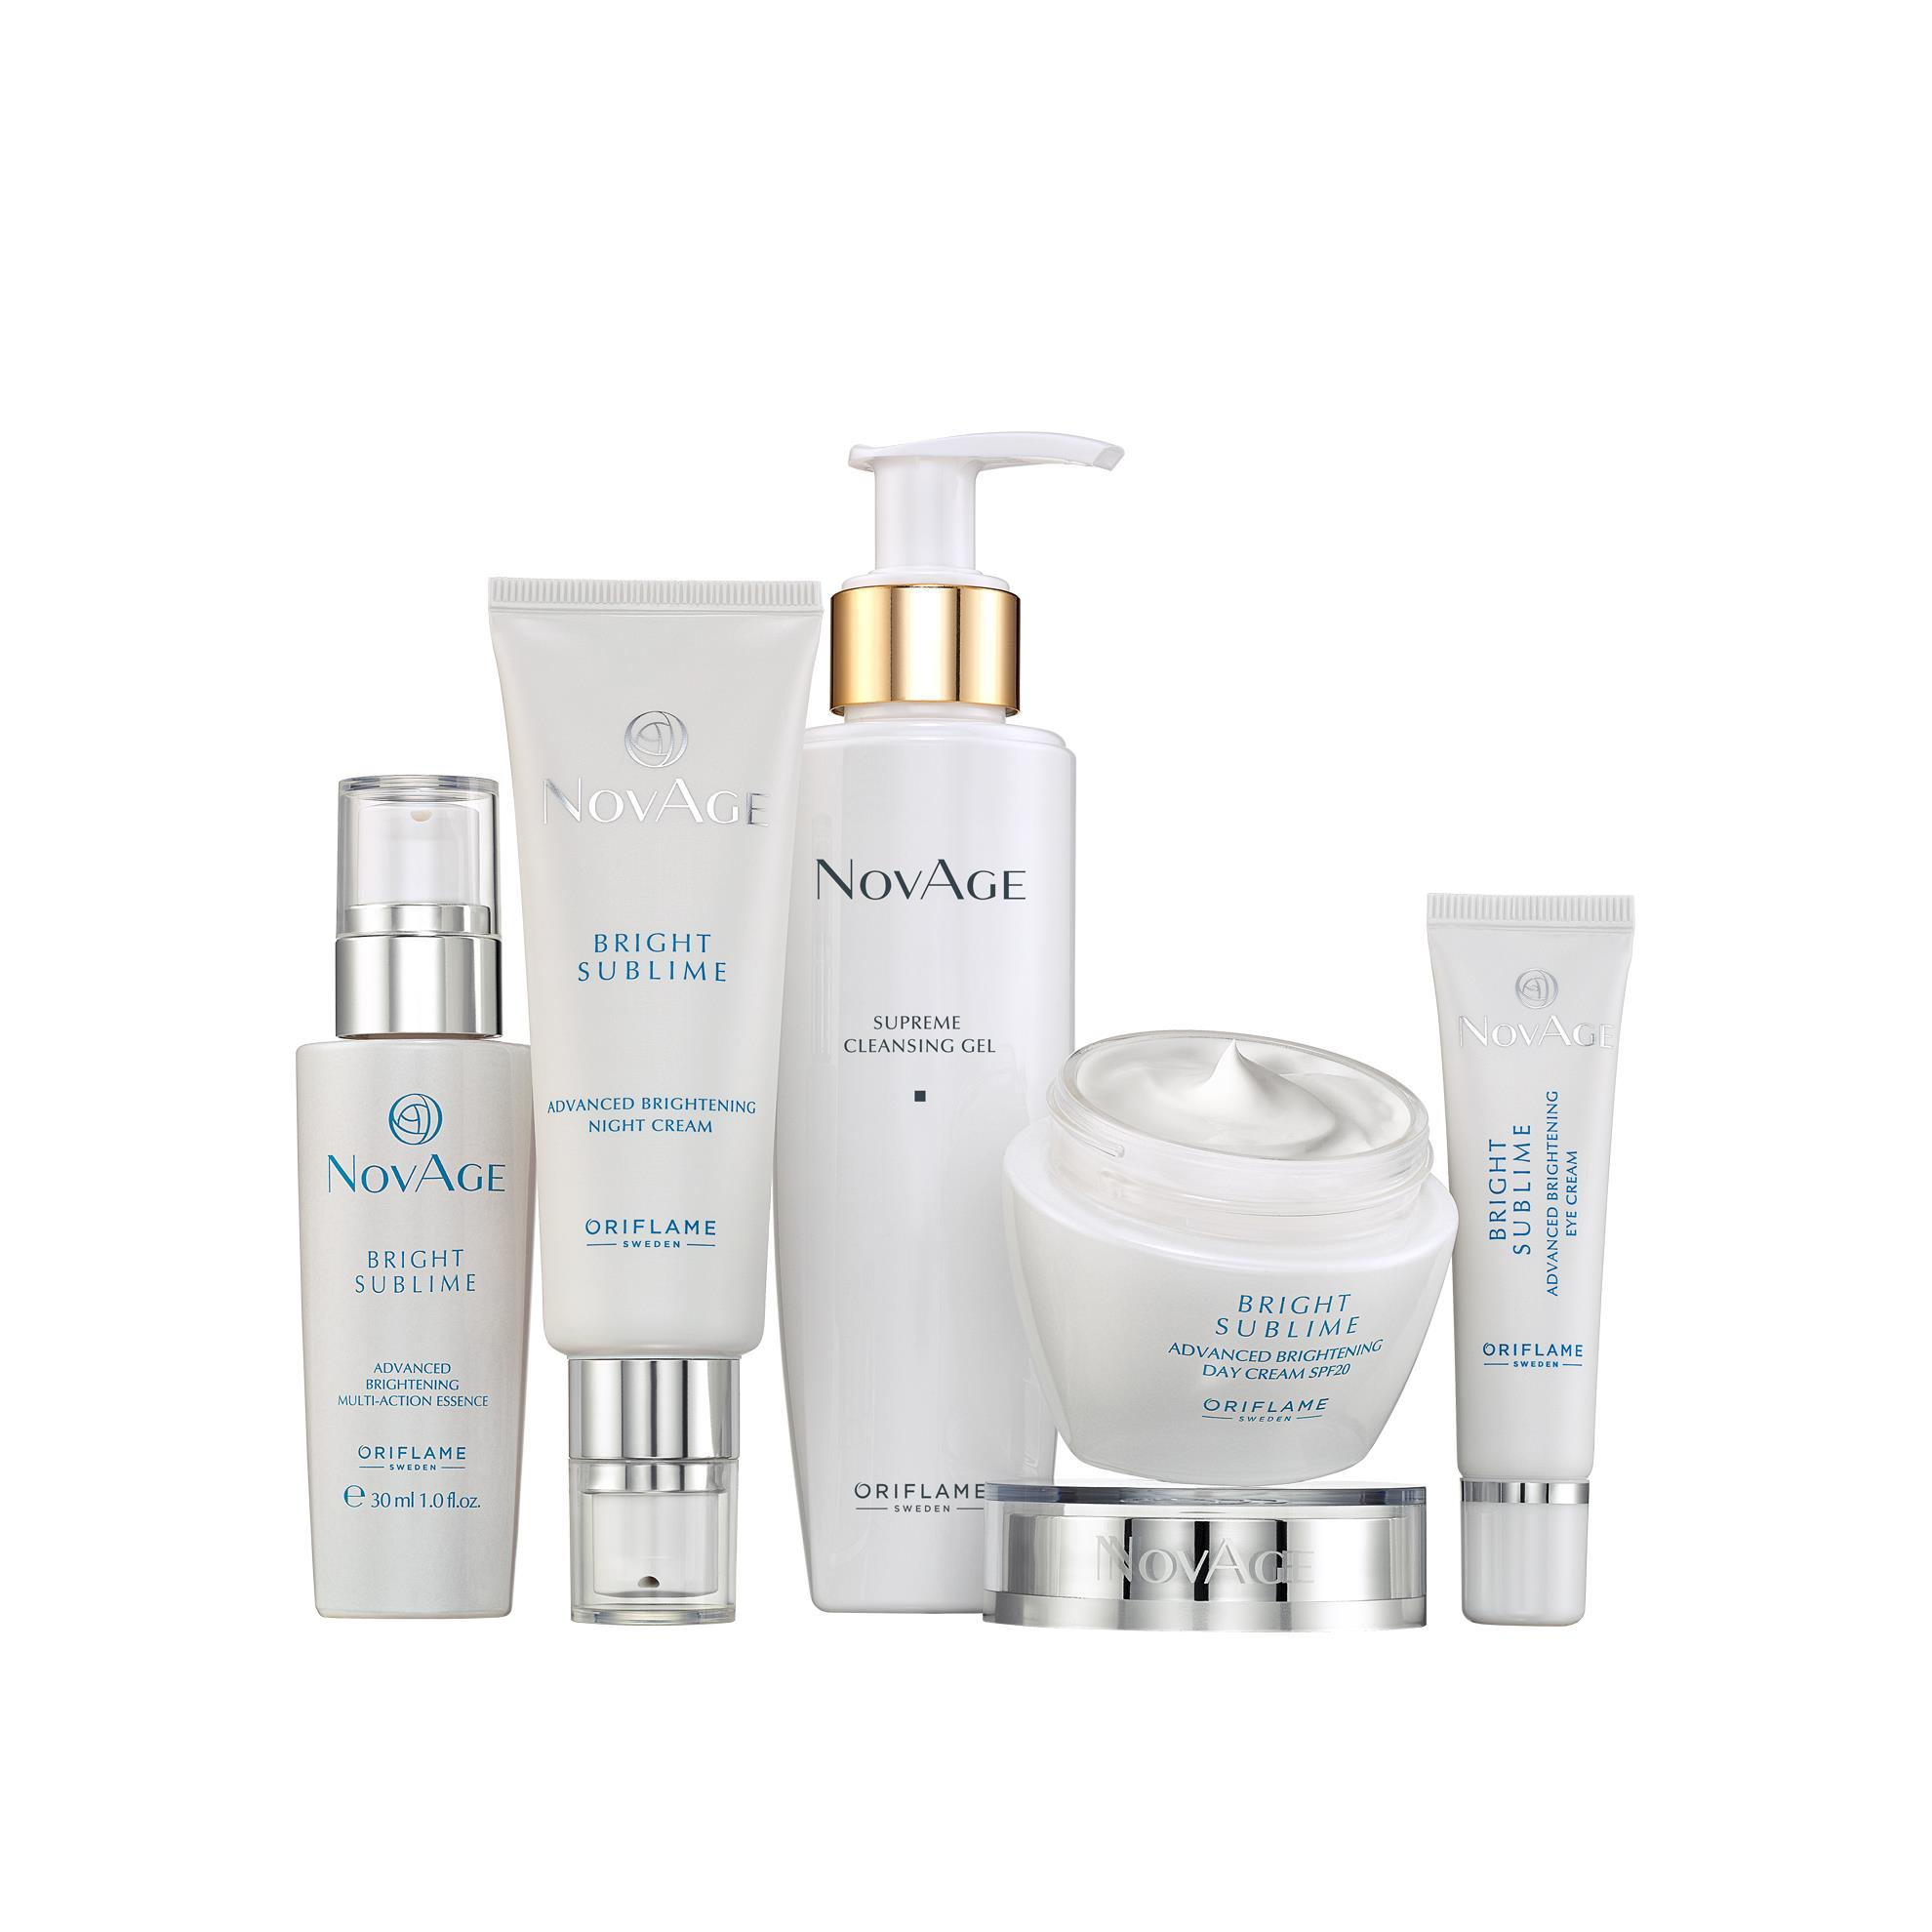 Oriflame Bright Sublime Products